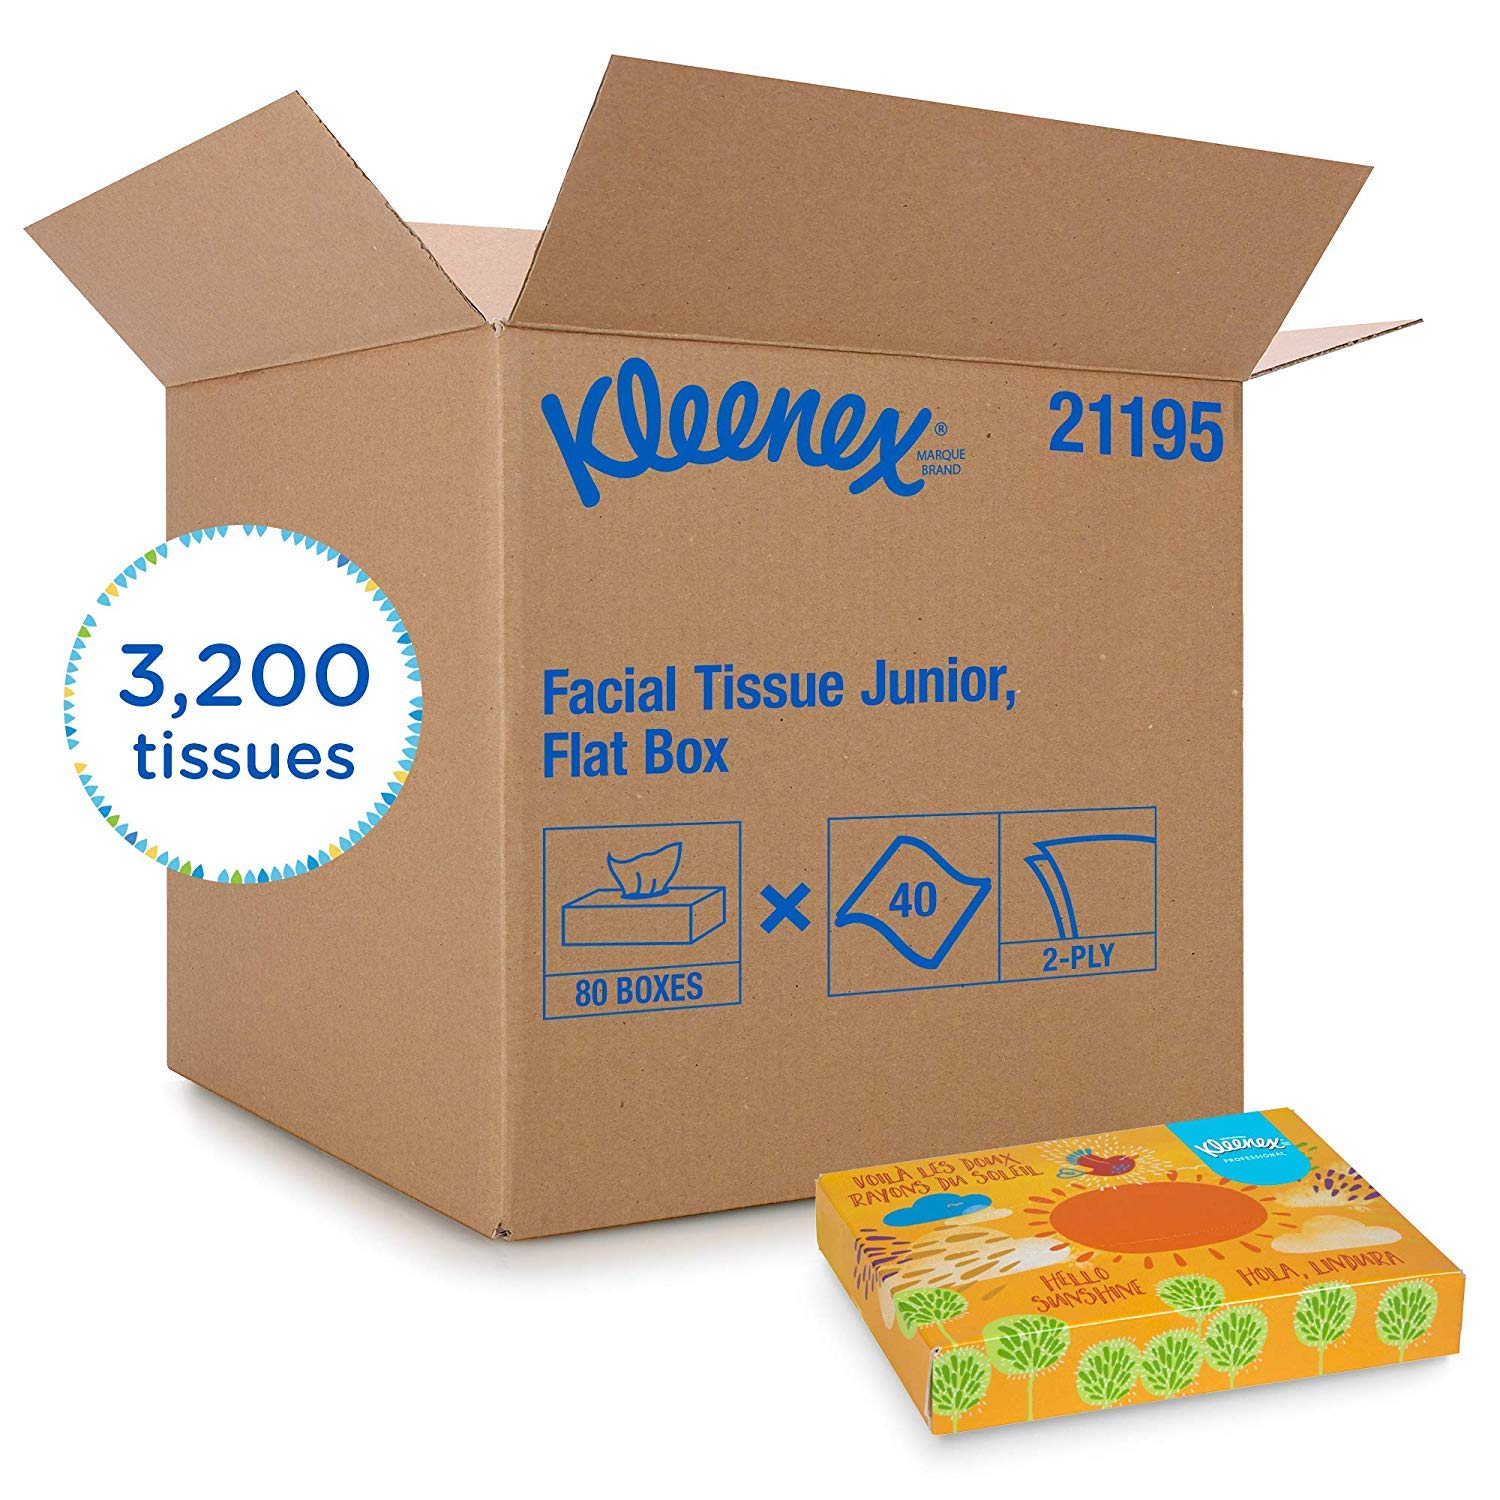 Kleenex Professional Facial Tissue for Business (21195), Flat Tissue Boxes, 80 Junior Boxes/Case, 40 Tissues/Box by Kimberly-Clark Professional (Image #1)